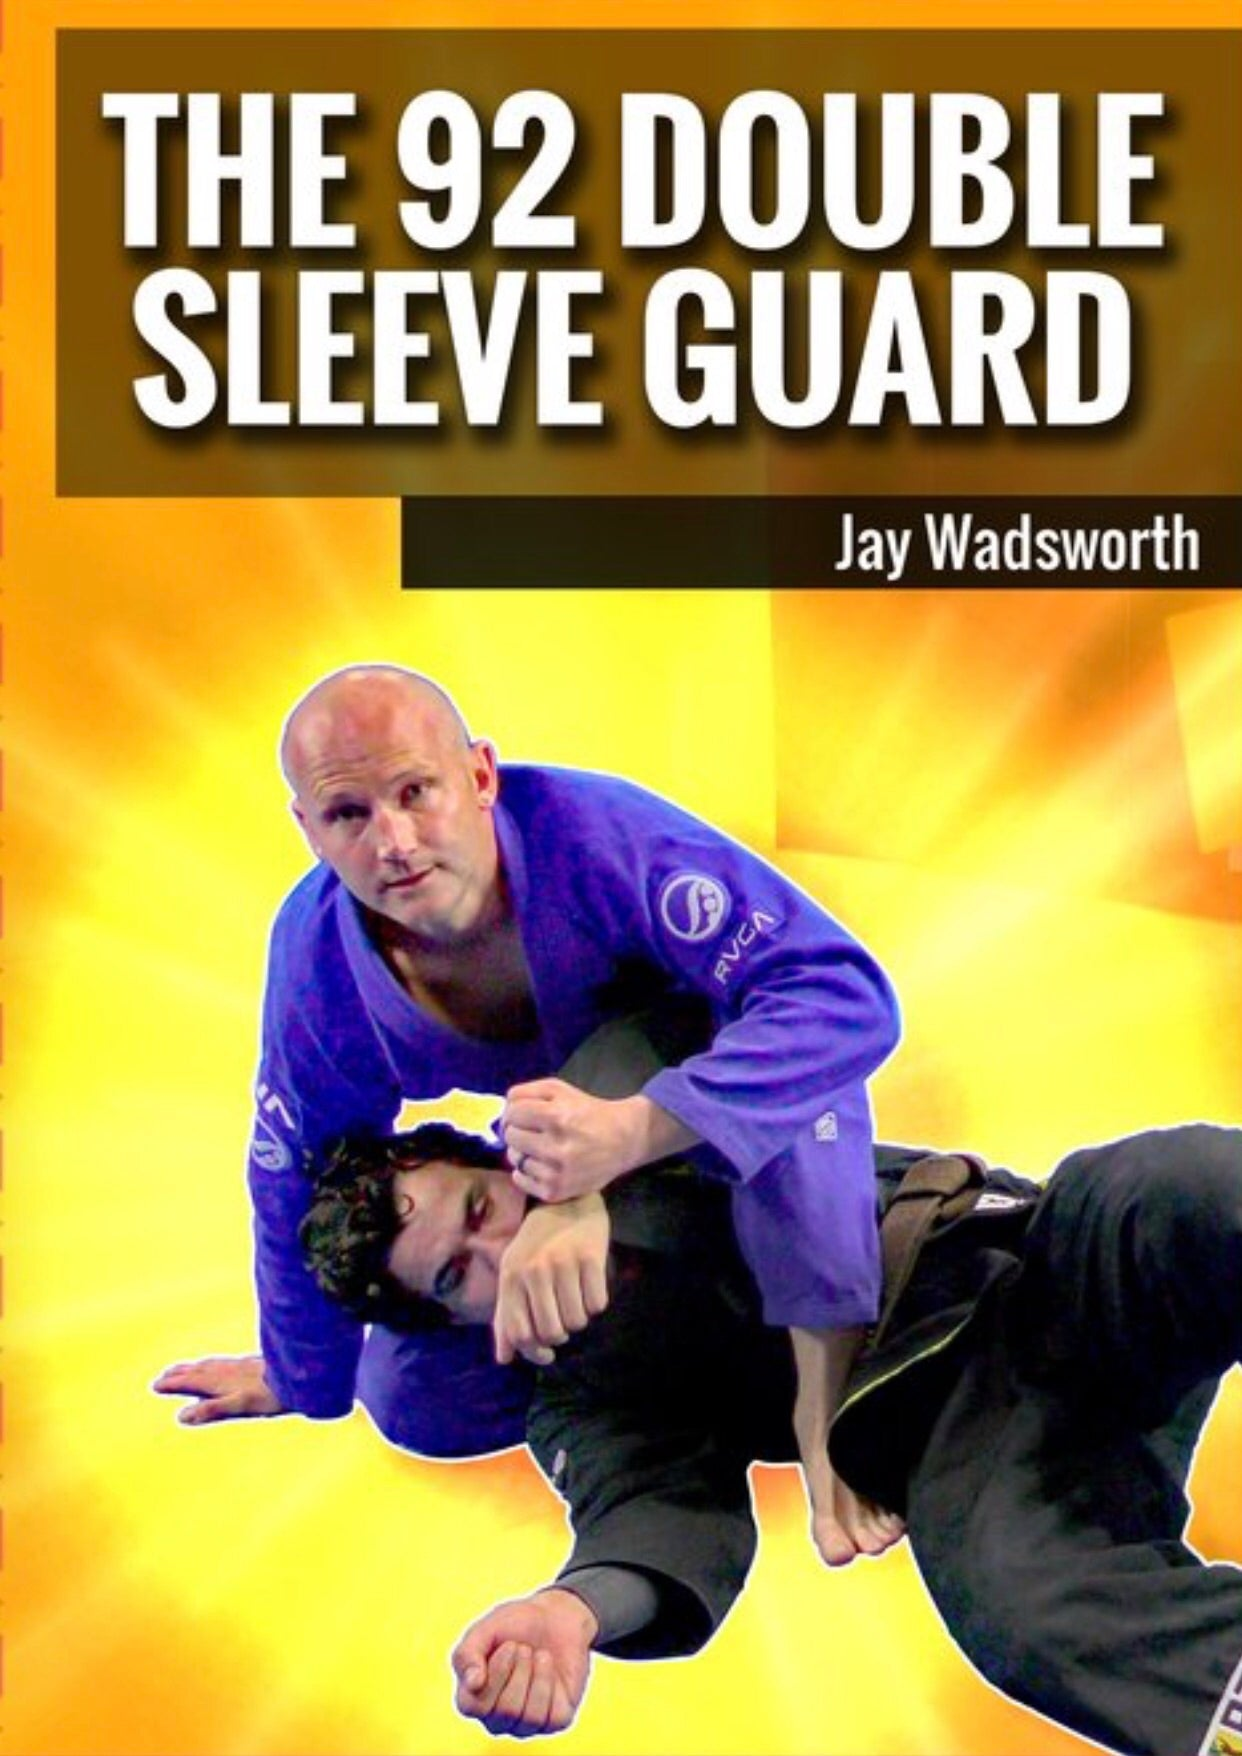 The 92 Double Sleeve Guard 2 DVD Set by Jay Wadsworth